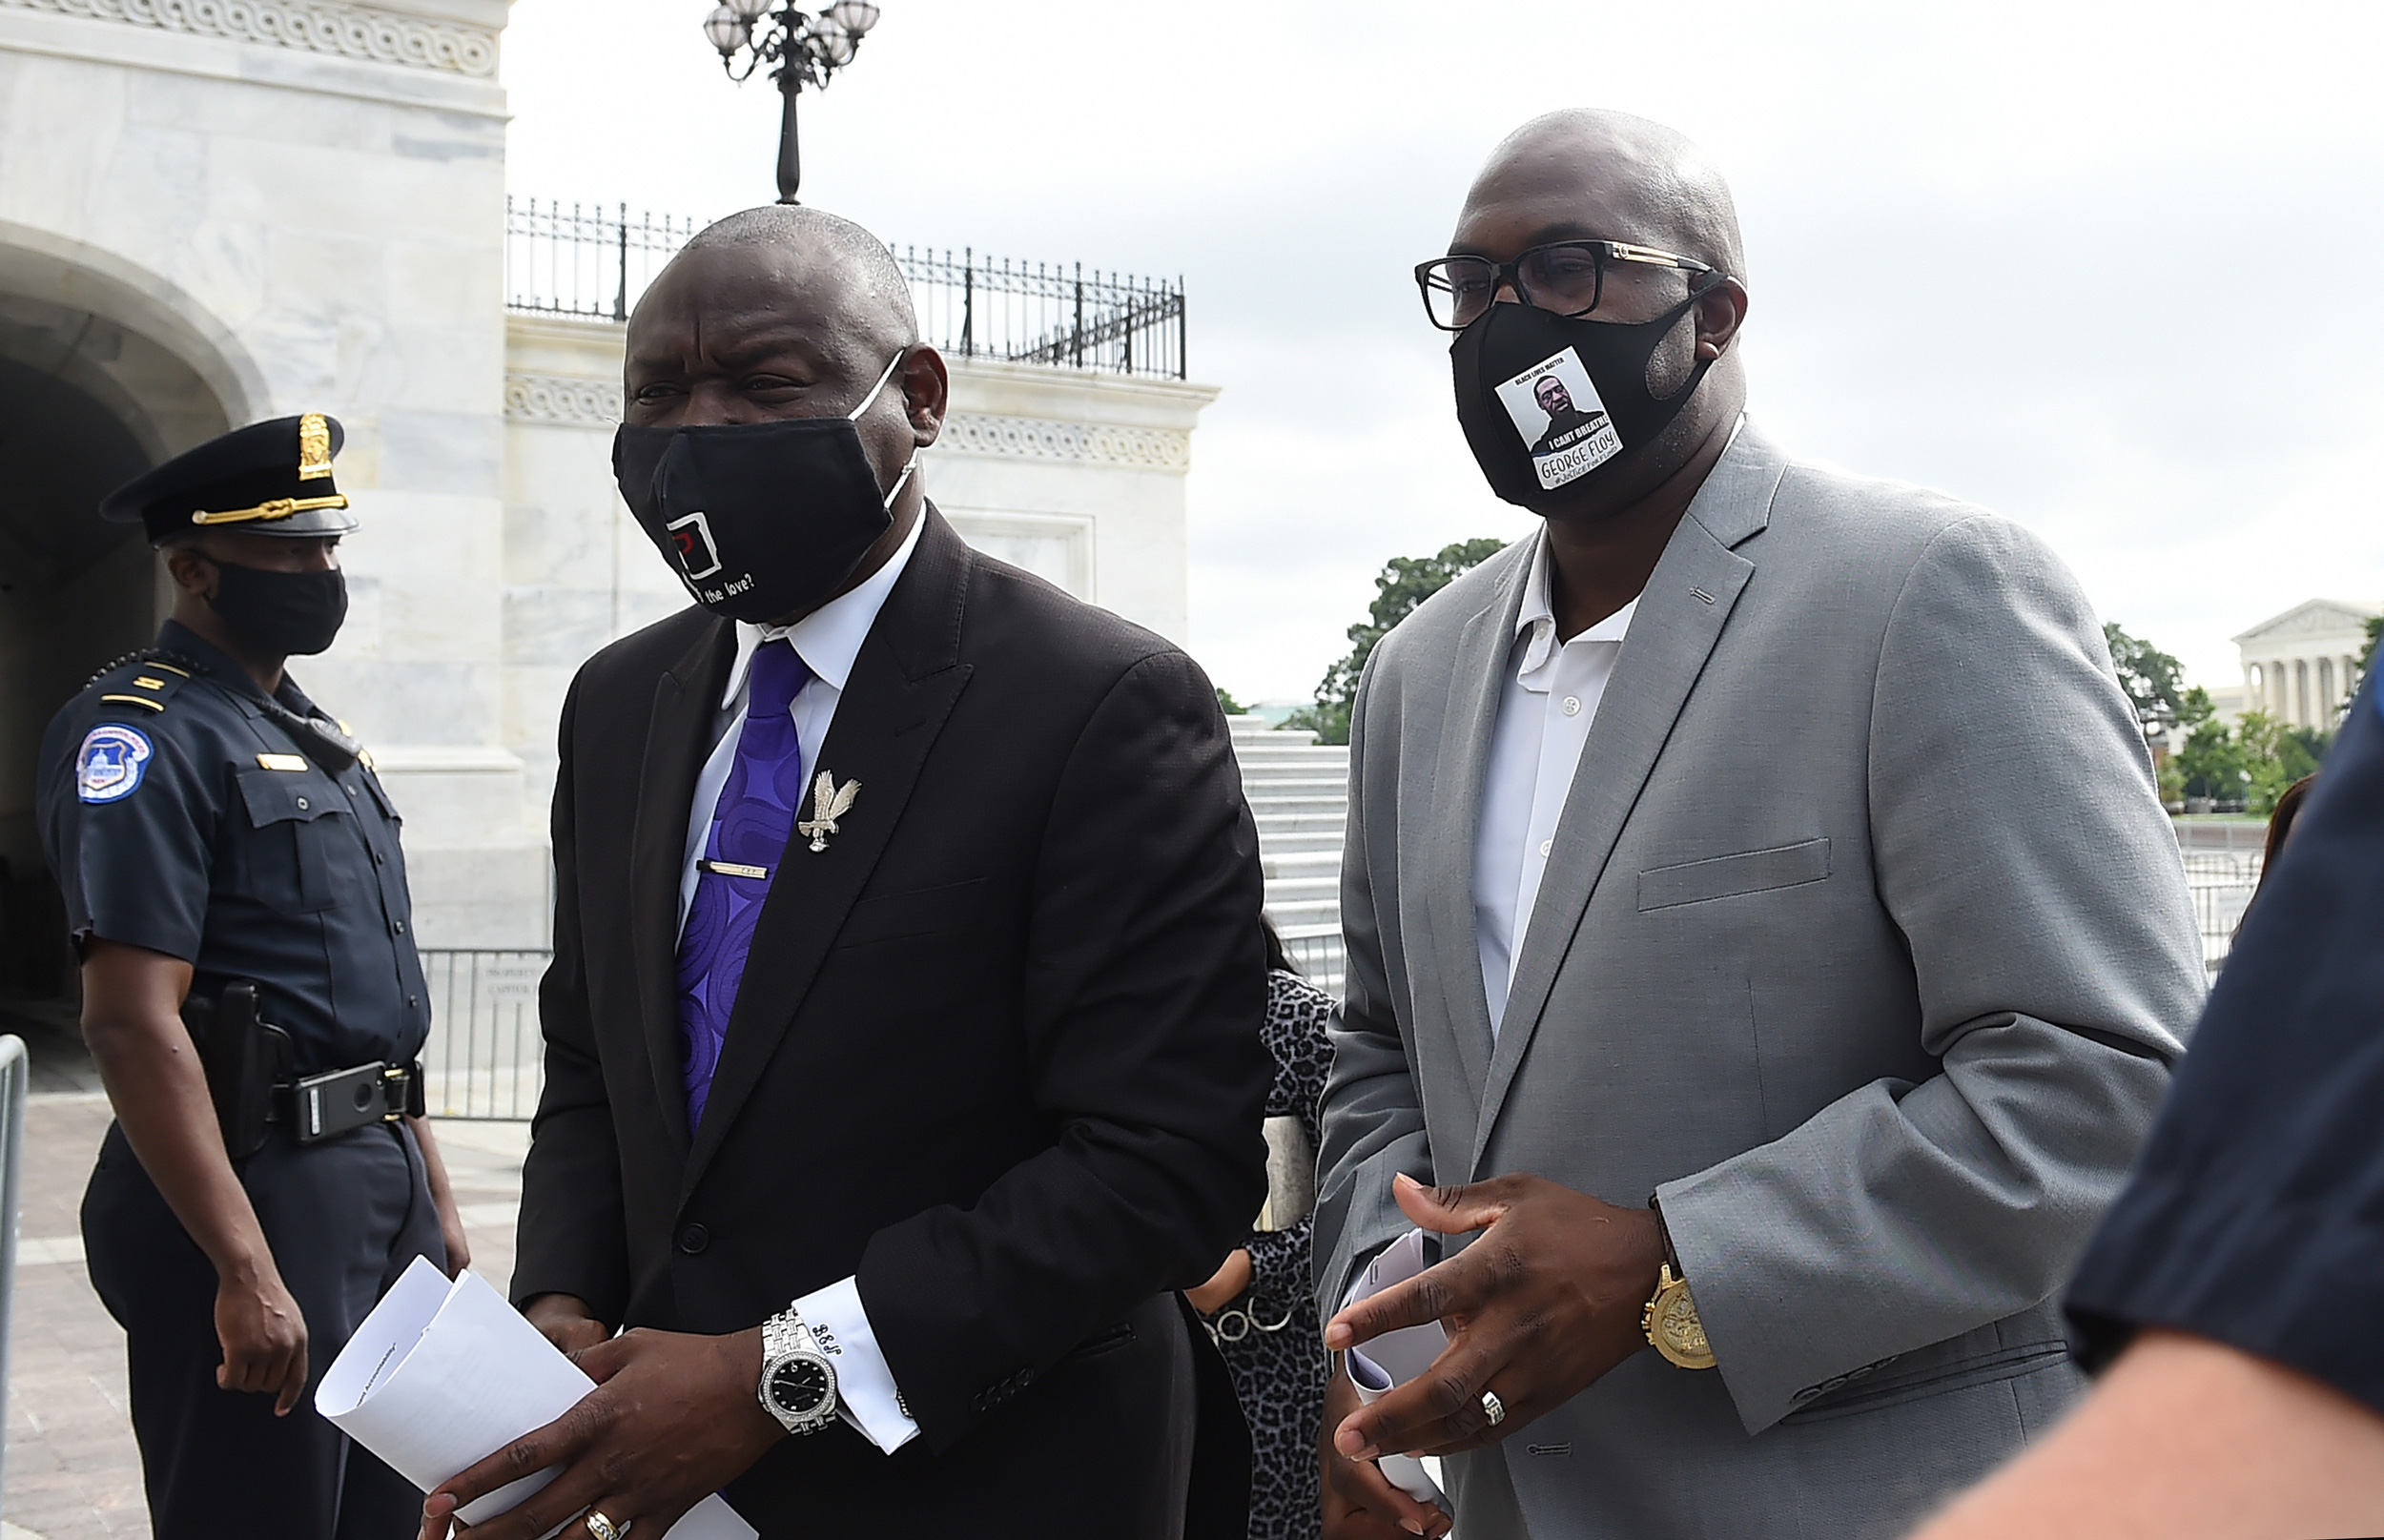 """Philonise Floyd, right, the brother of George Floyd, arrives at the US Capitol to testify at""""Oversight Hearing on Policing Practices and Law Enforcement Accountability"""" in Washington on June 10."""